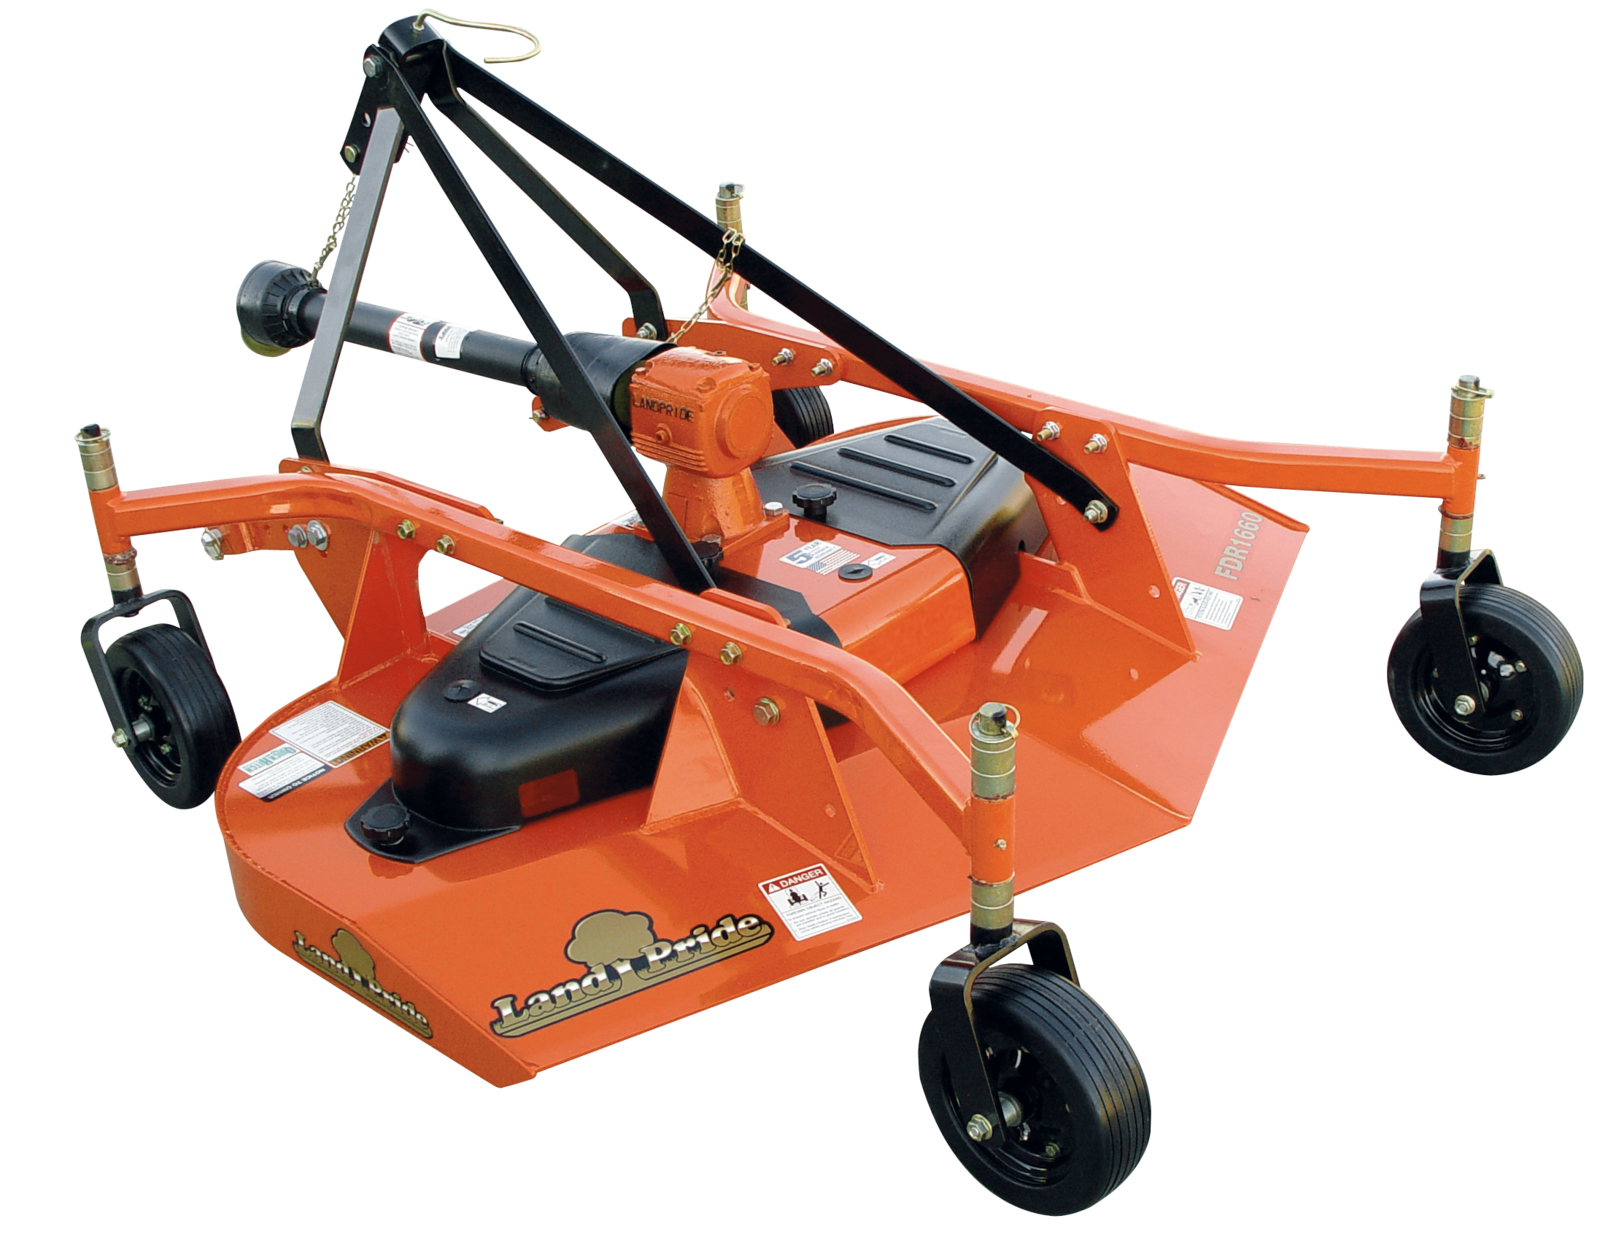 2020 Land Pride FDR1660 Rotary Cutter